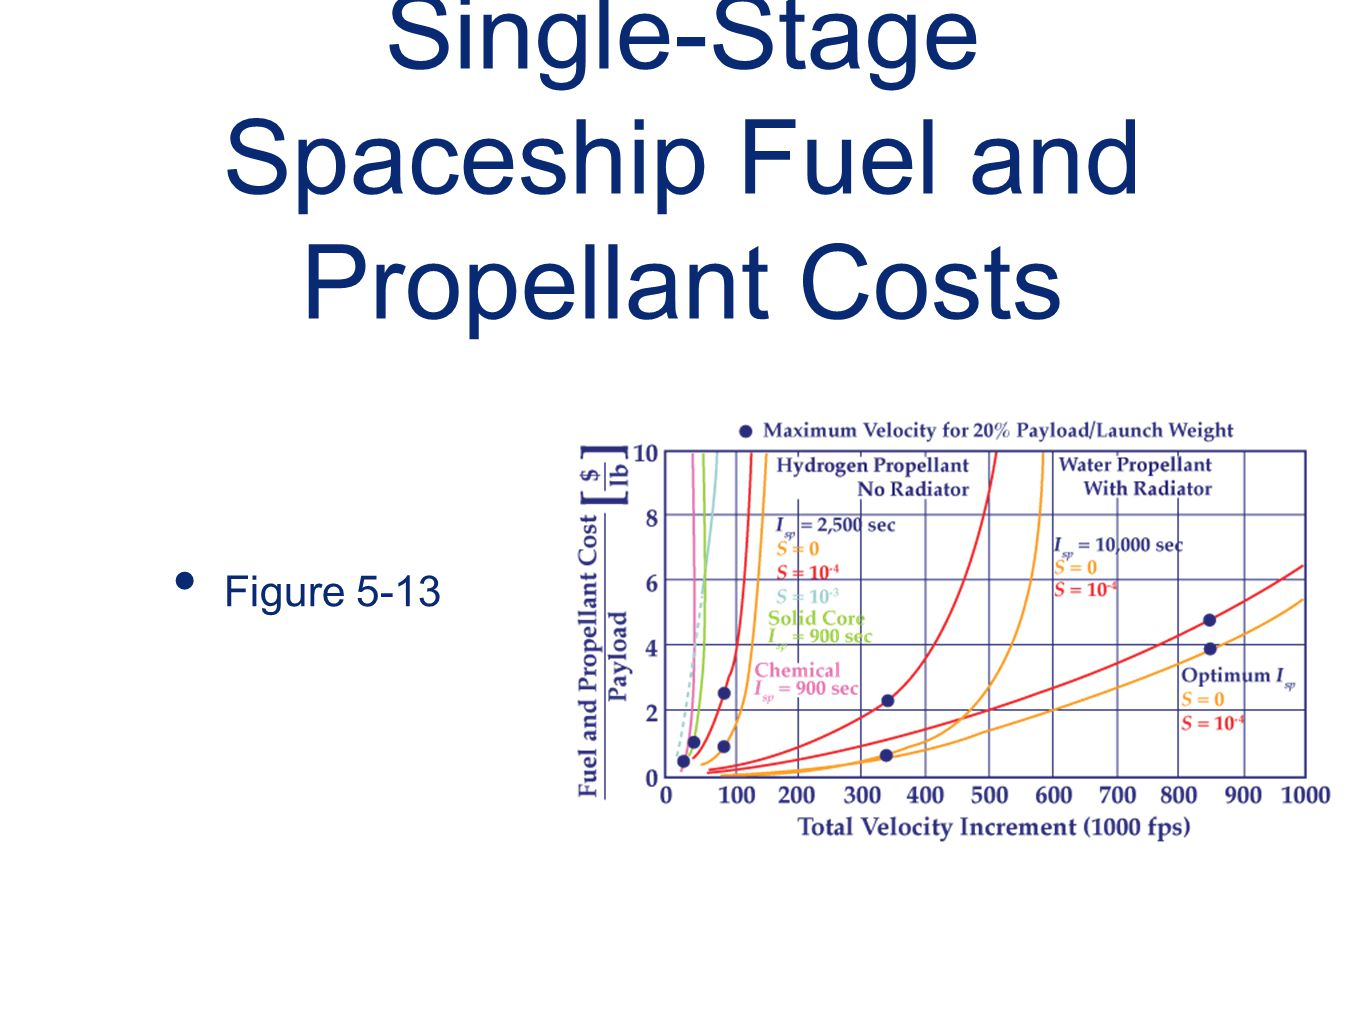 Single-Stage Spaceship Fuel and Propellant Costs